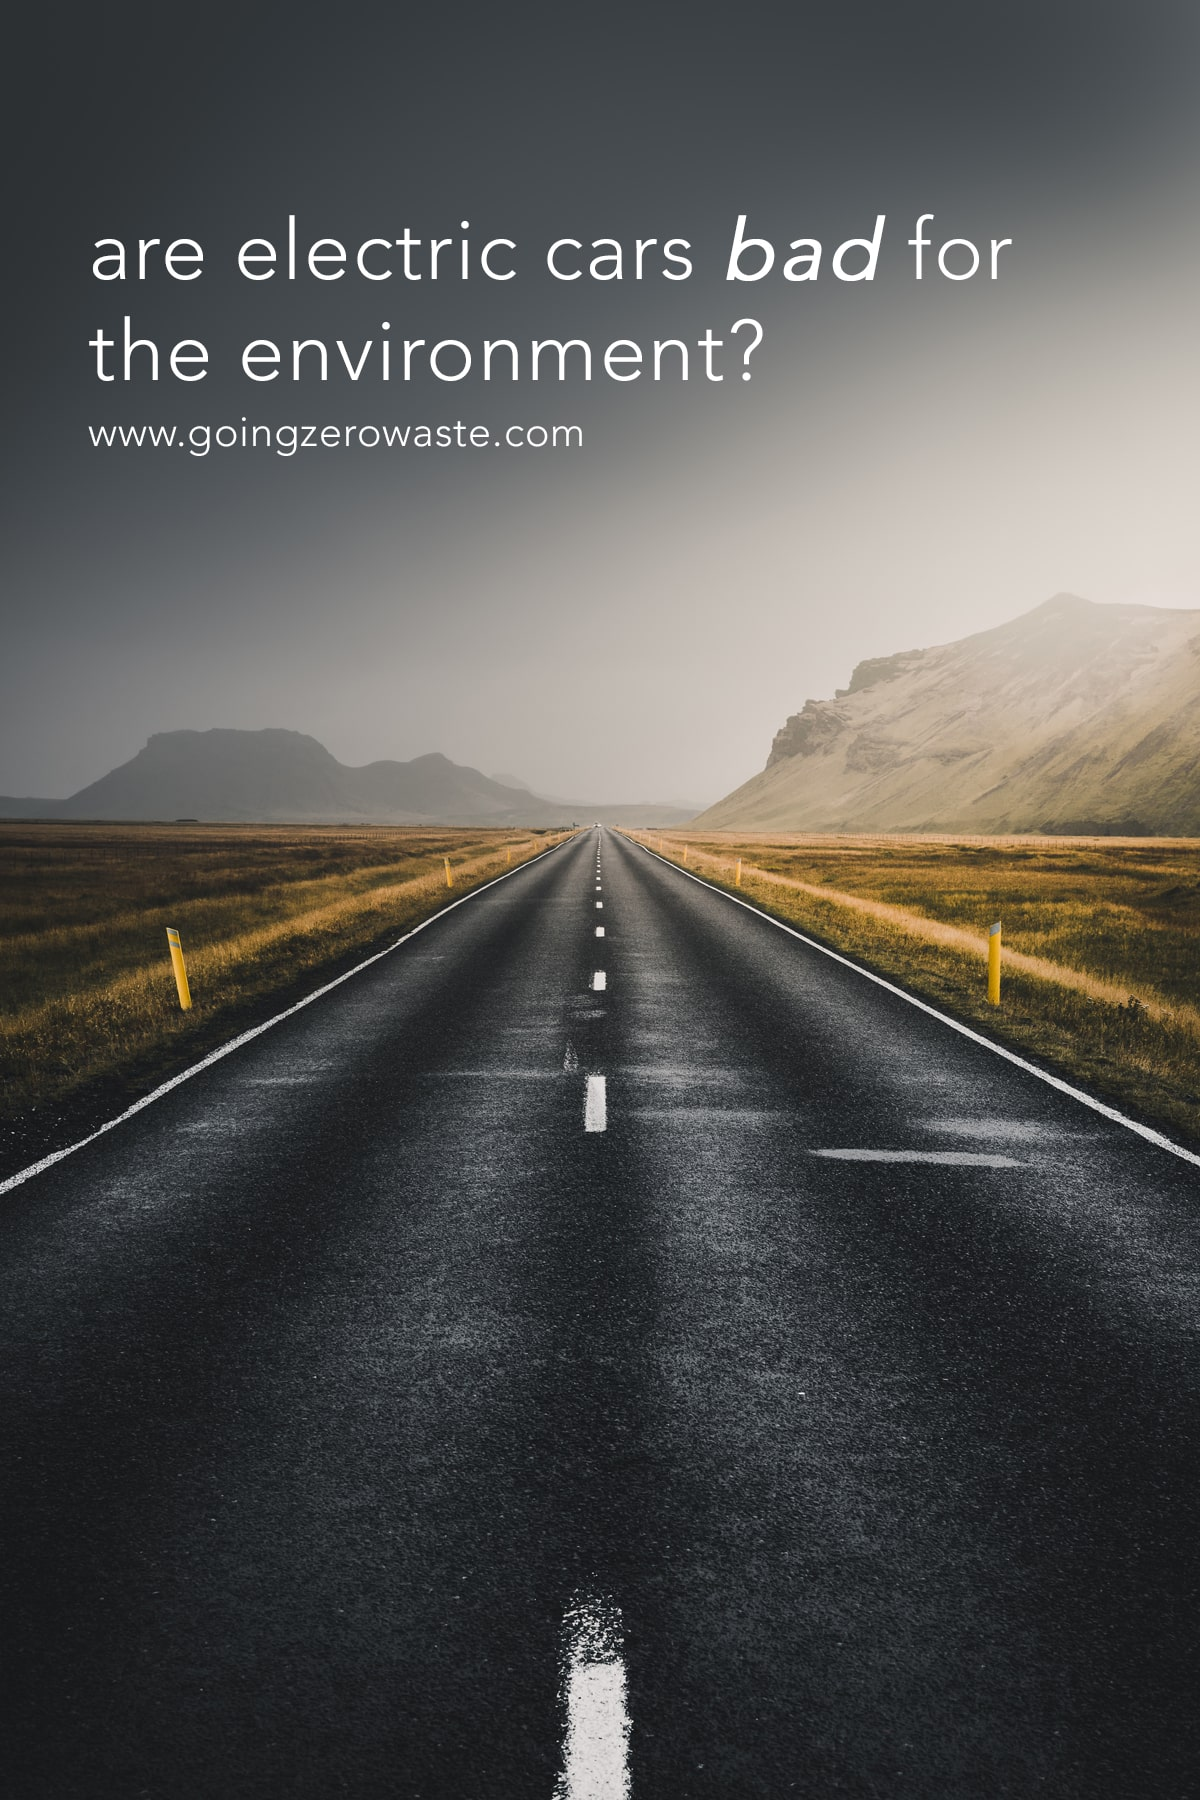 Are electric cars bad for the environment from www.goingzerowaste.com #electriccar #electric #ecofriendly #sustainableliving #cars #energy #solar